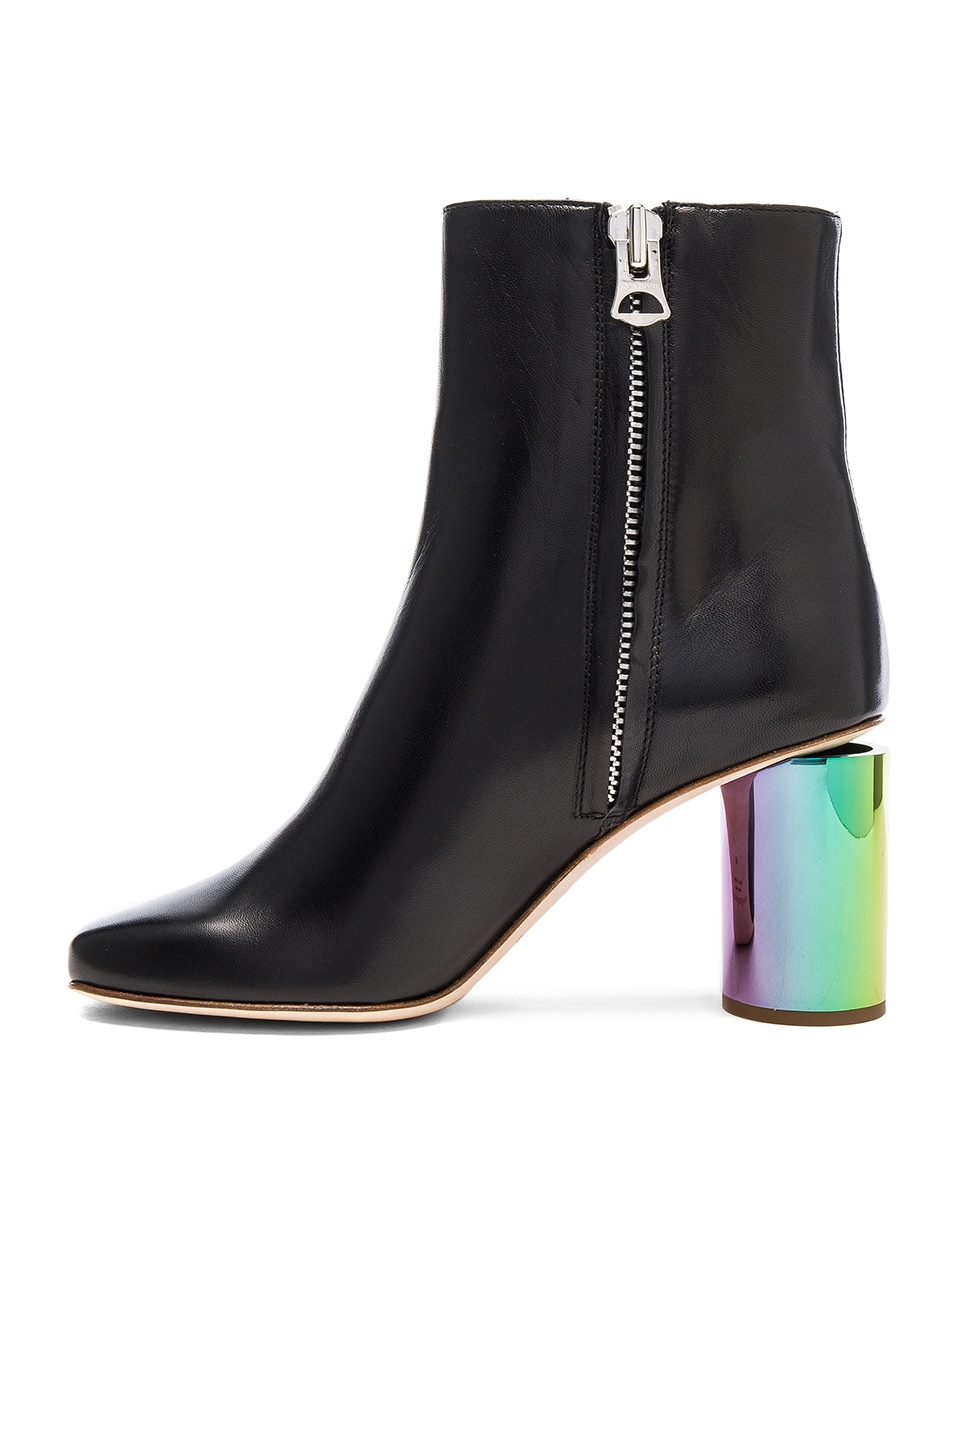 Image 5 of Acne Studios Leather Althea Booties in Black & Oily Yellow